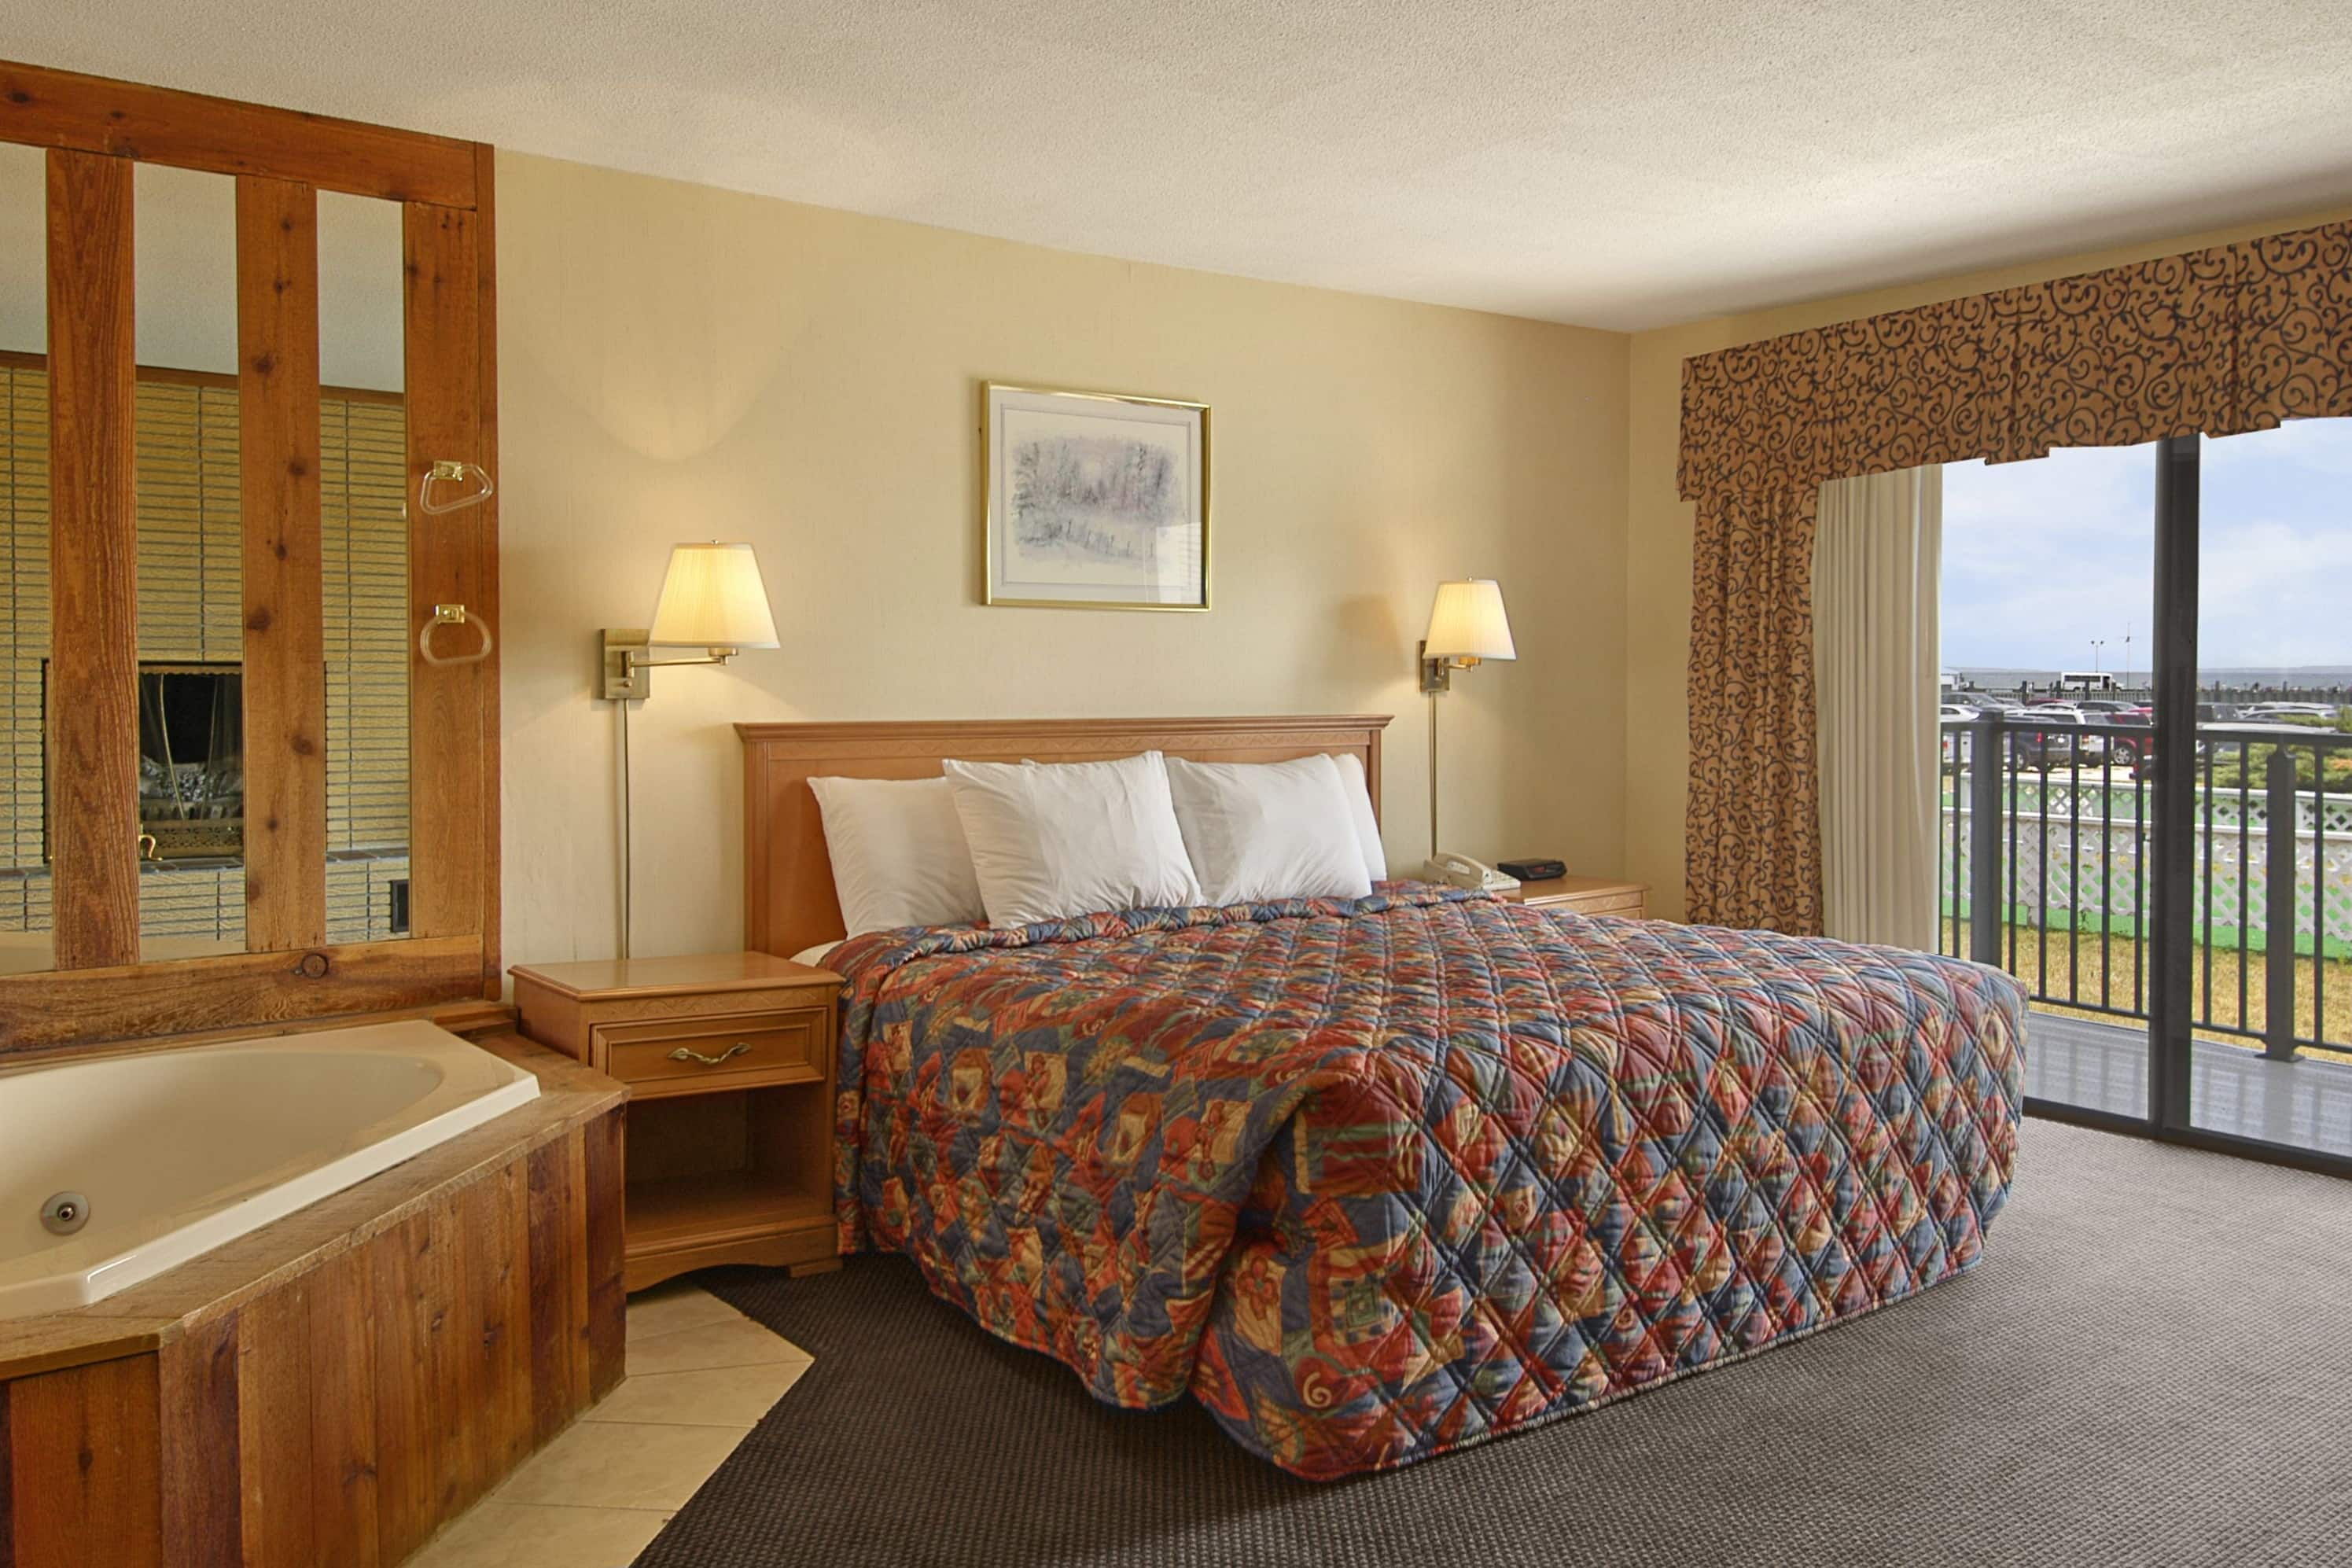 Guest room at the Days Inn Mackinaw City - Lakeview in Mackinaw City, Michigan